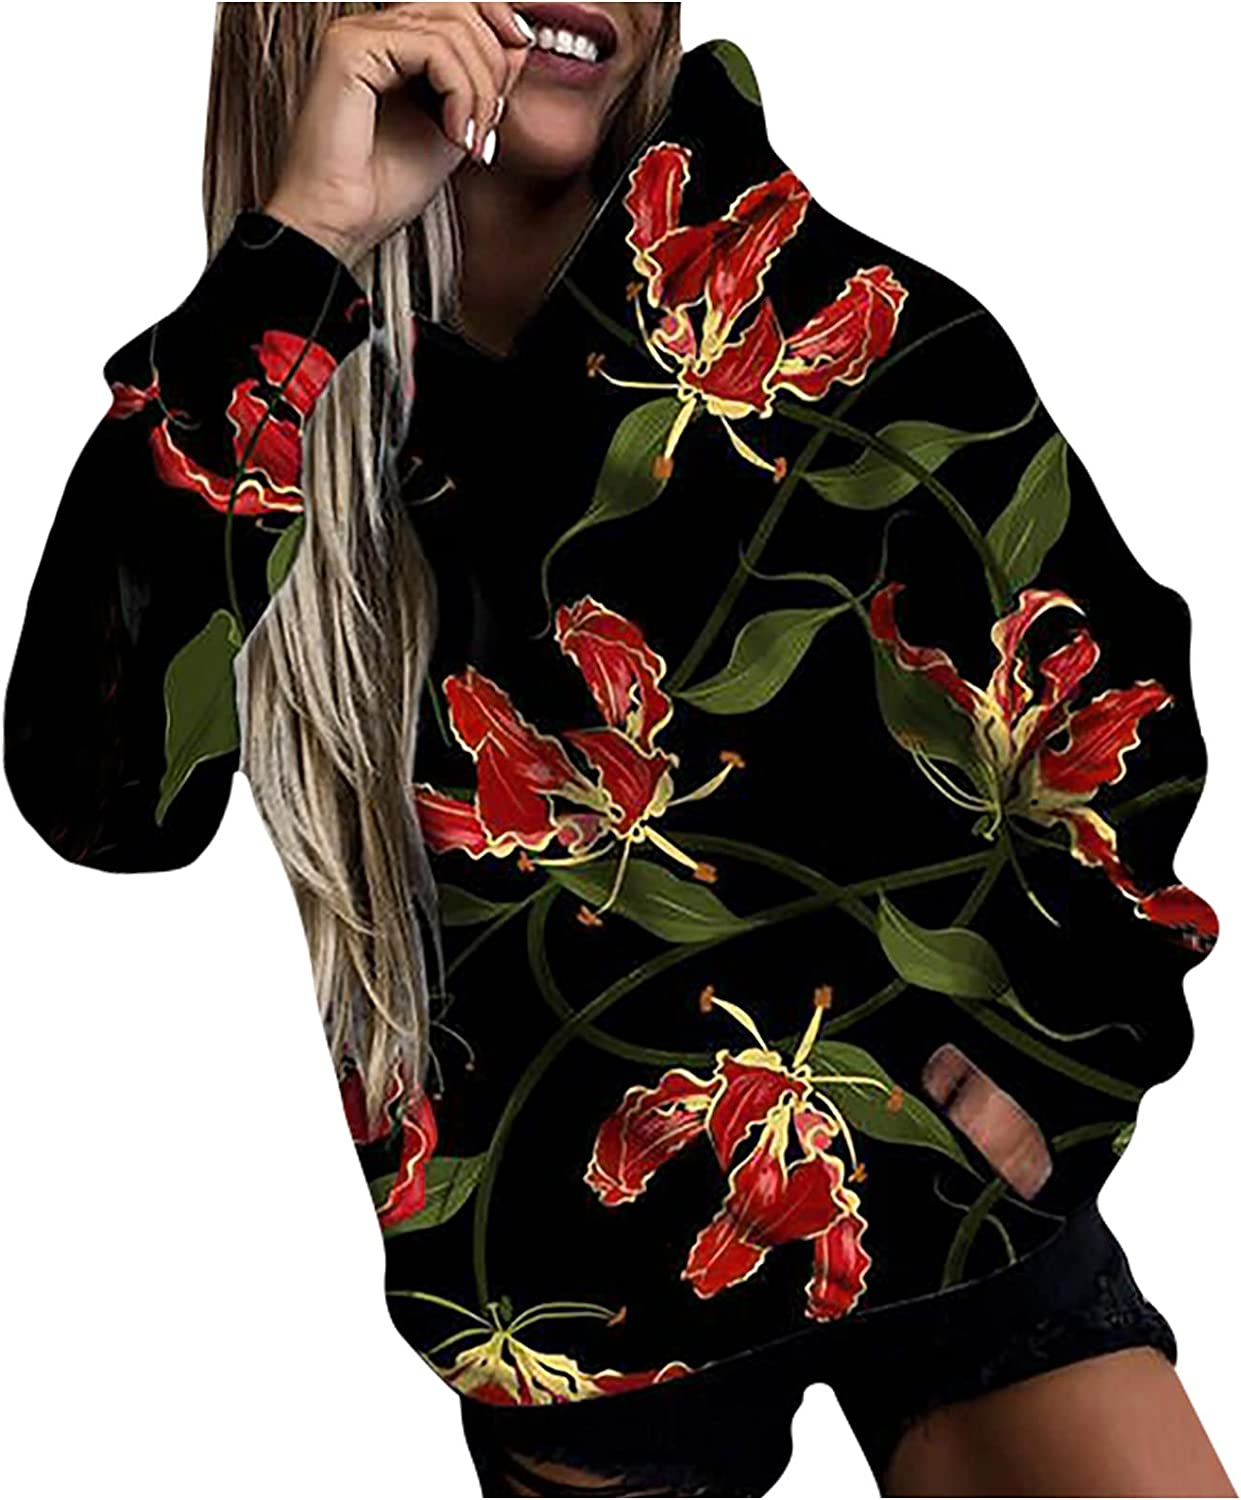 Hoodie for Women Black Trendy Casual Floral Prints Long Sleeve Shirts Lightweight Fit Crewneck Sweatshirts with Pocket